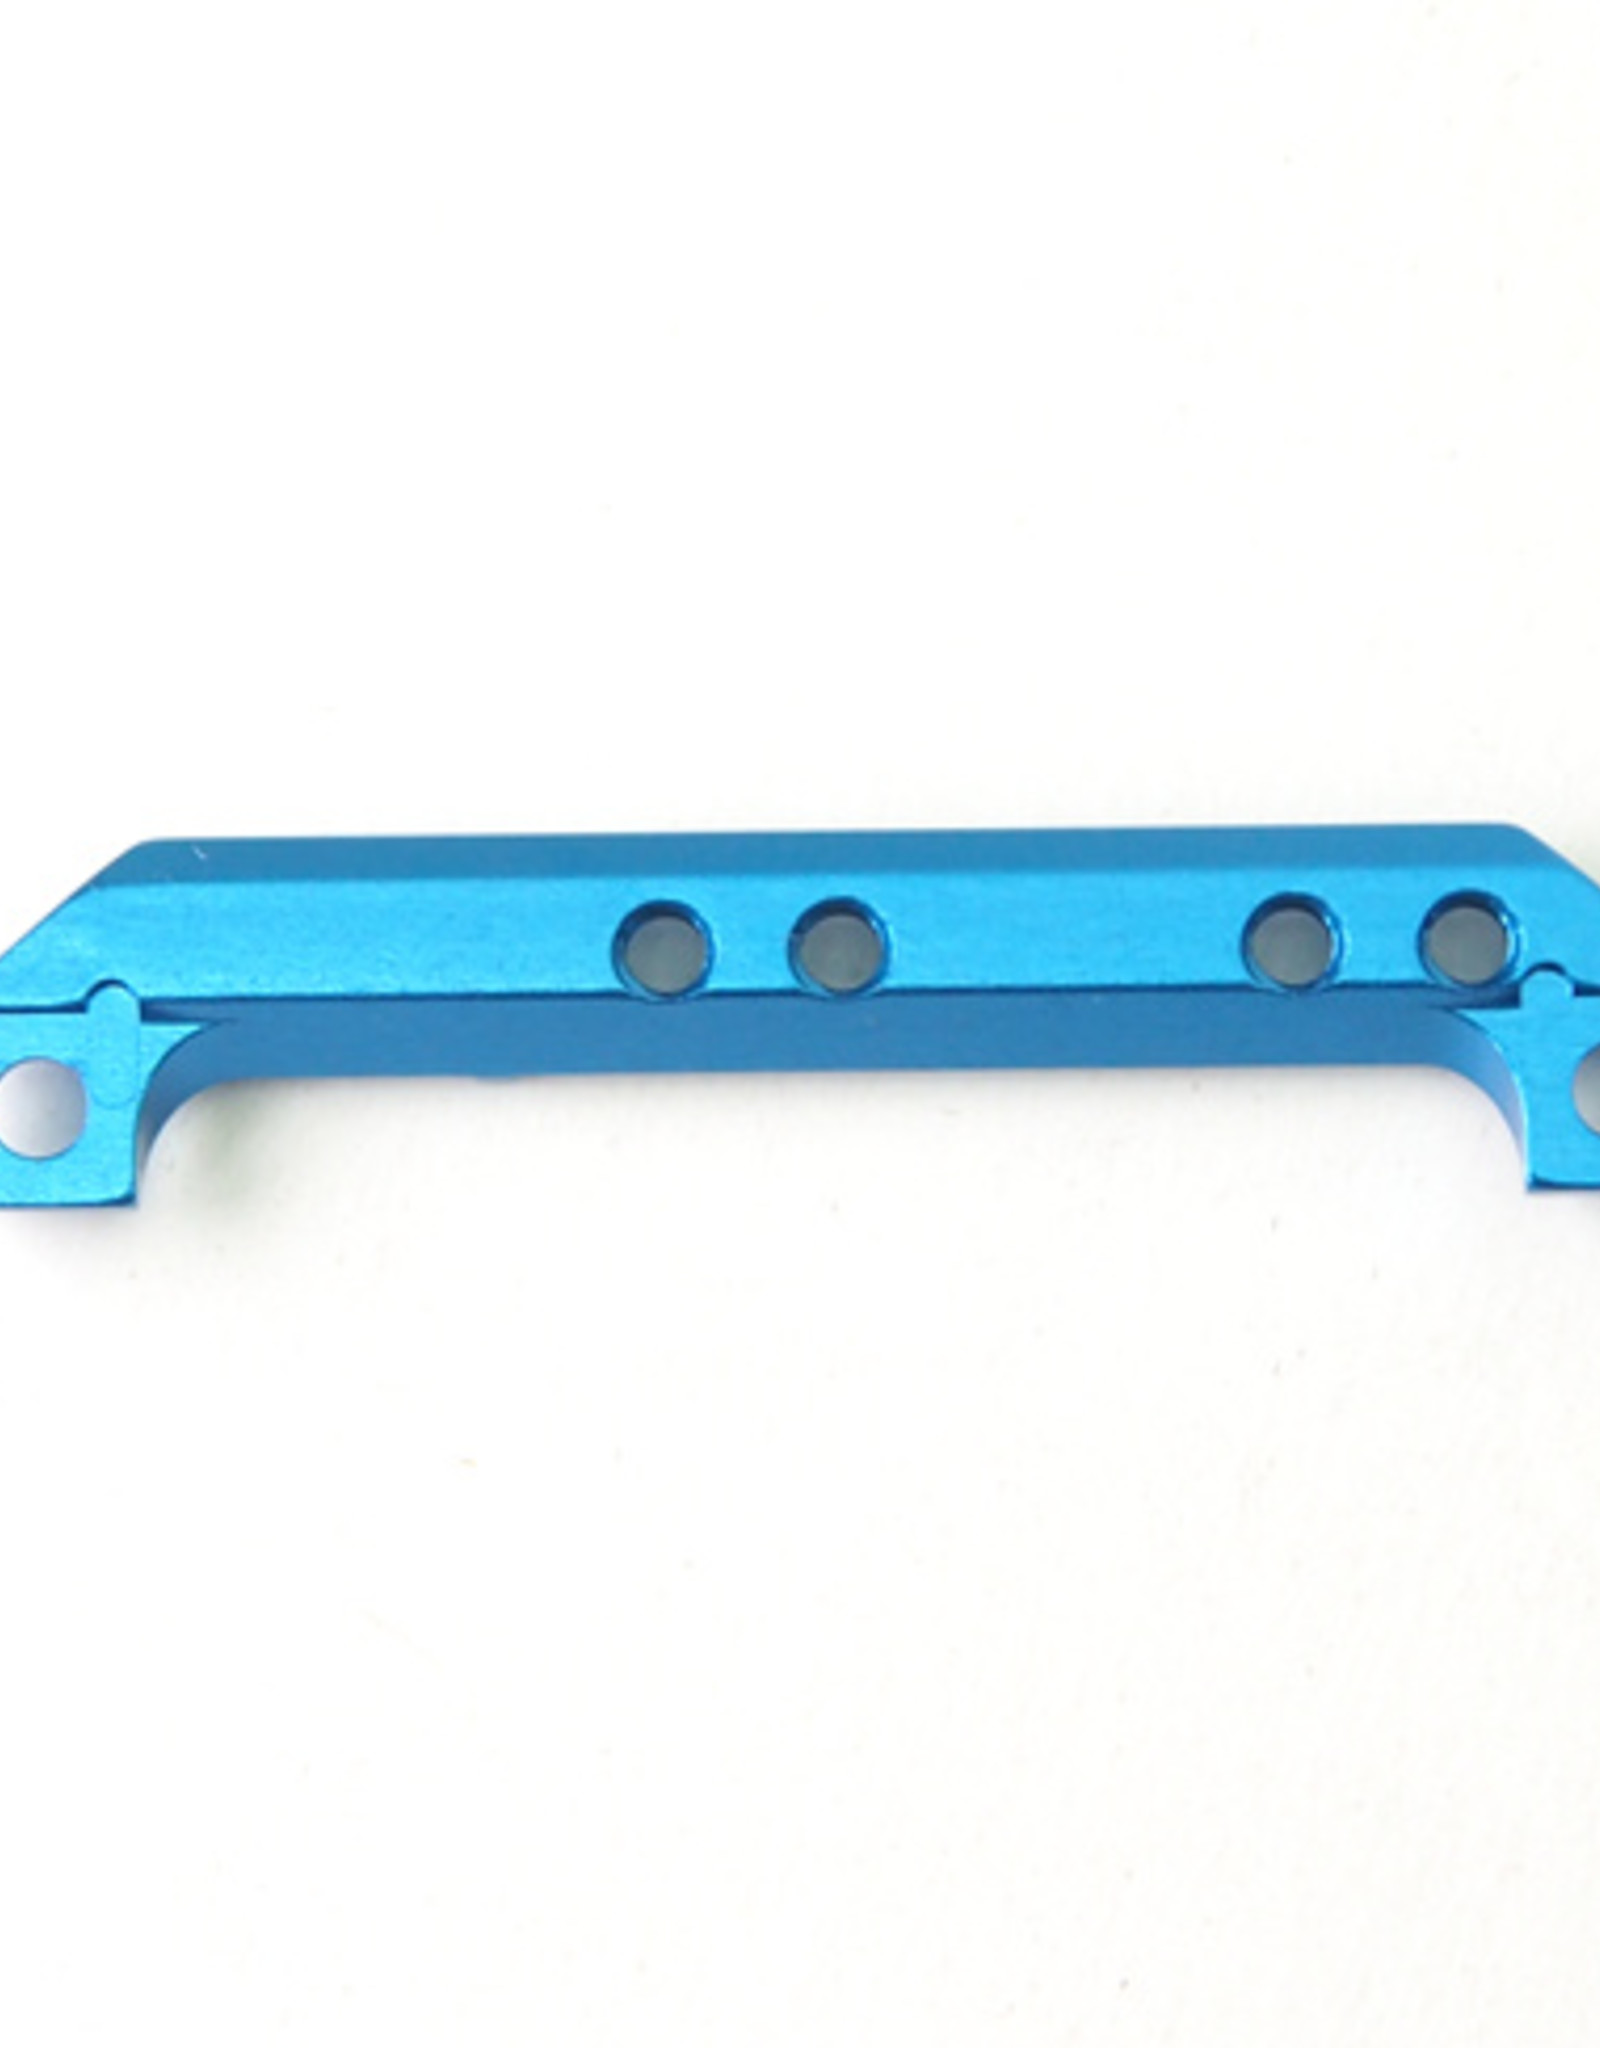 Pn Racing PN Racing Mini-Z V5 LCG Motor Mount T-Bar Mount (Blue)